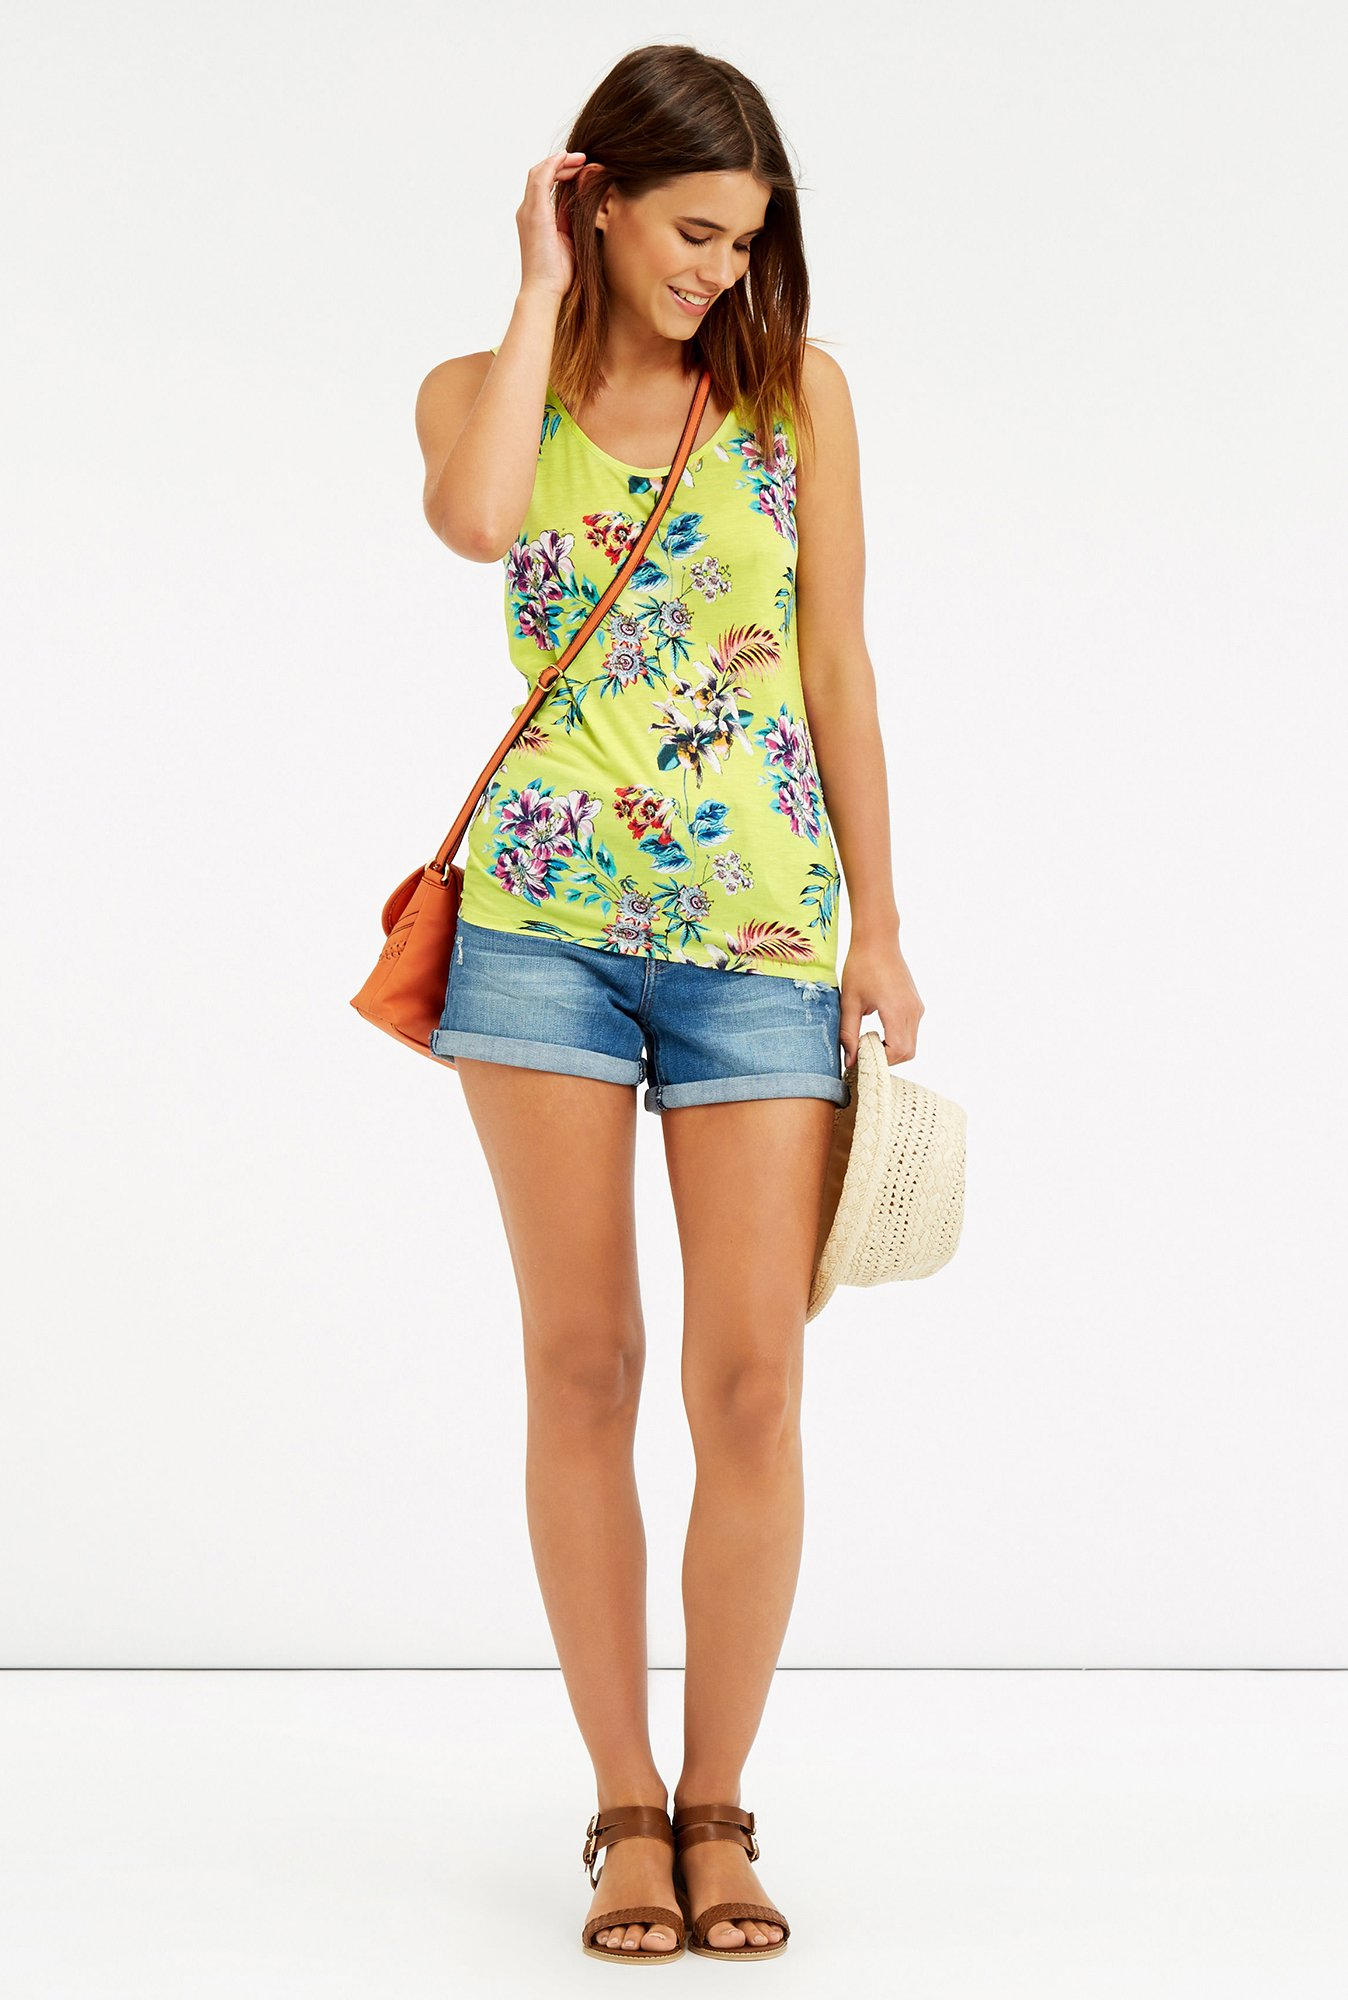 Oasis Yellow Floral Print Top